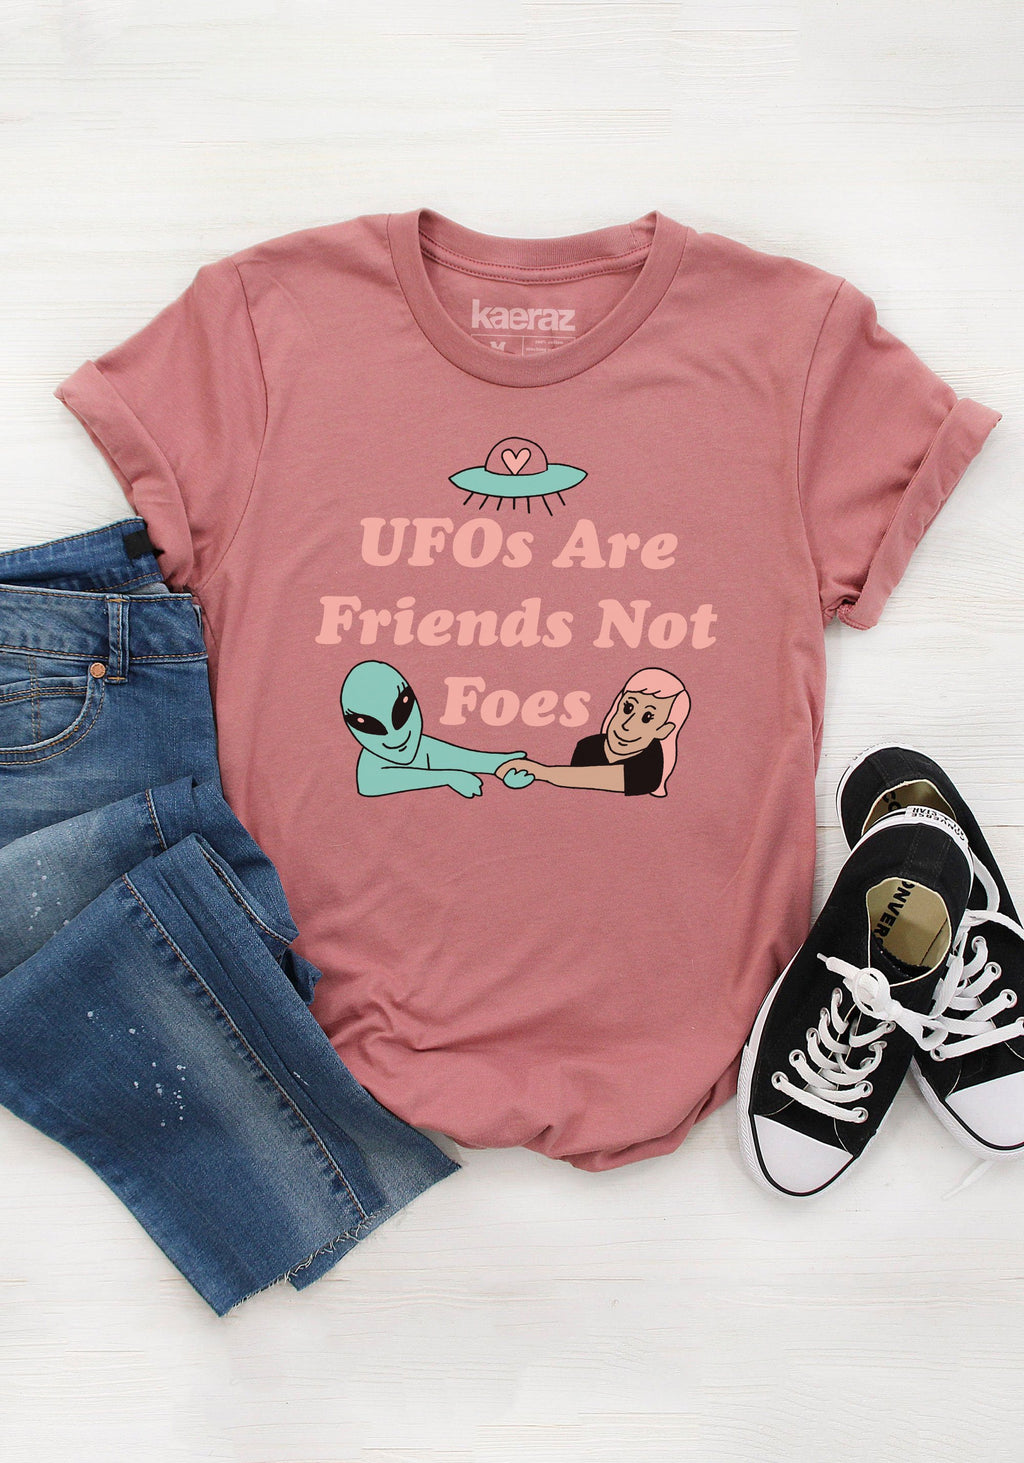 UFOs Are Friends Tee / womens graphic tees / alien outer space ufo shirt / galaxy extra terrestrial / paranormal sighting t shirt